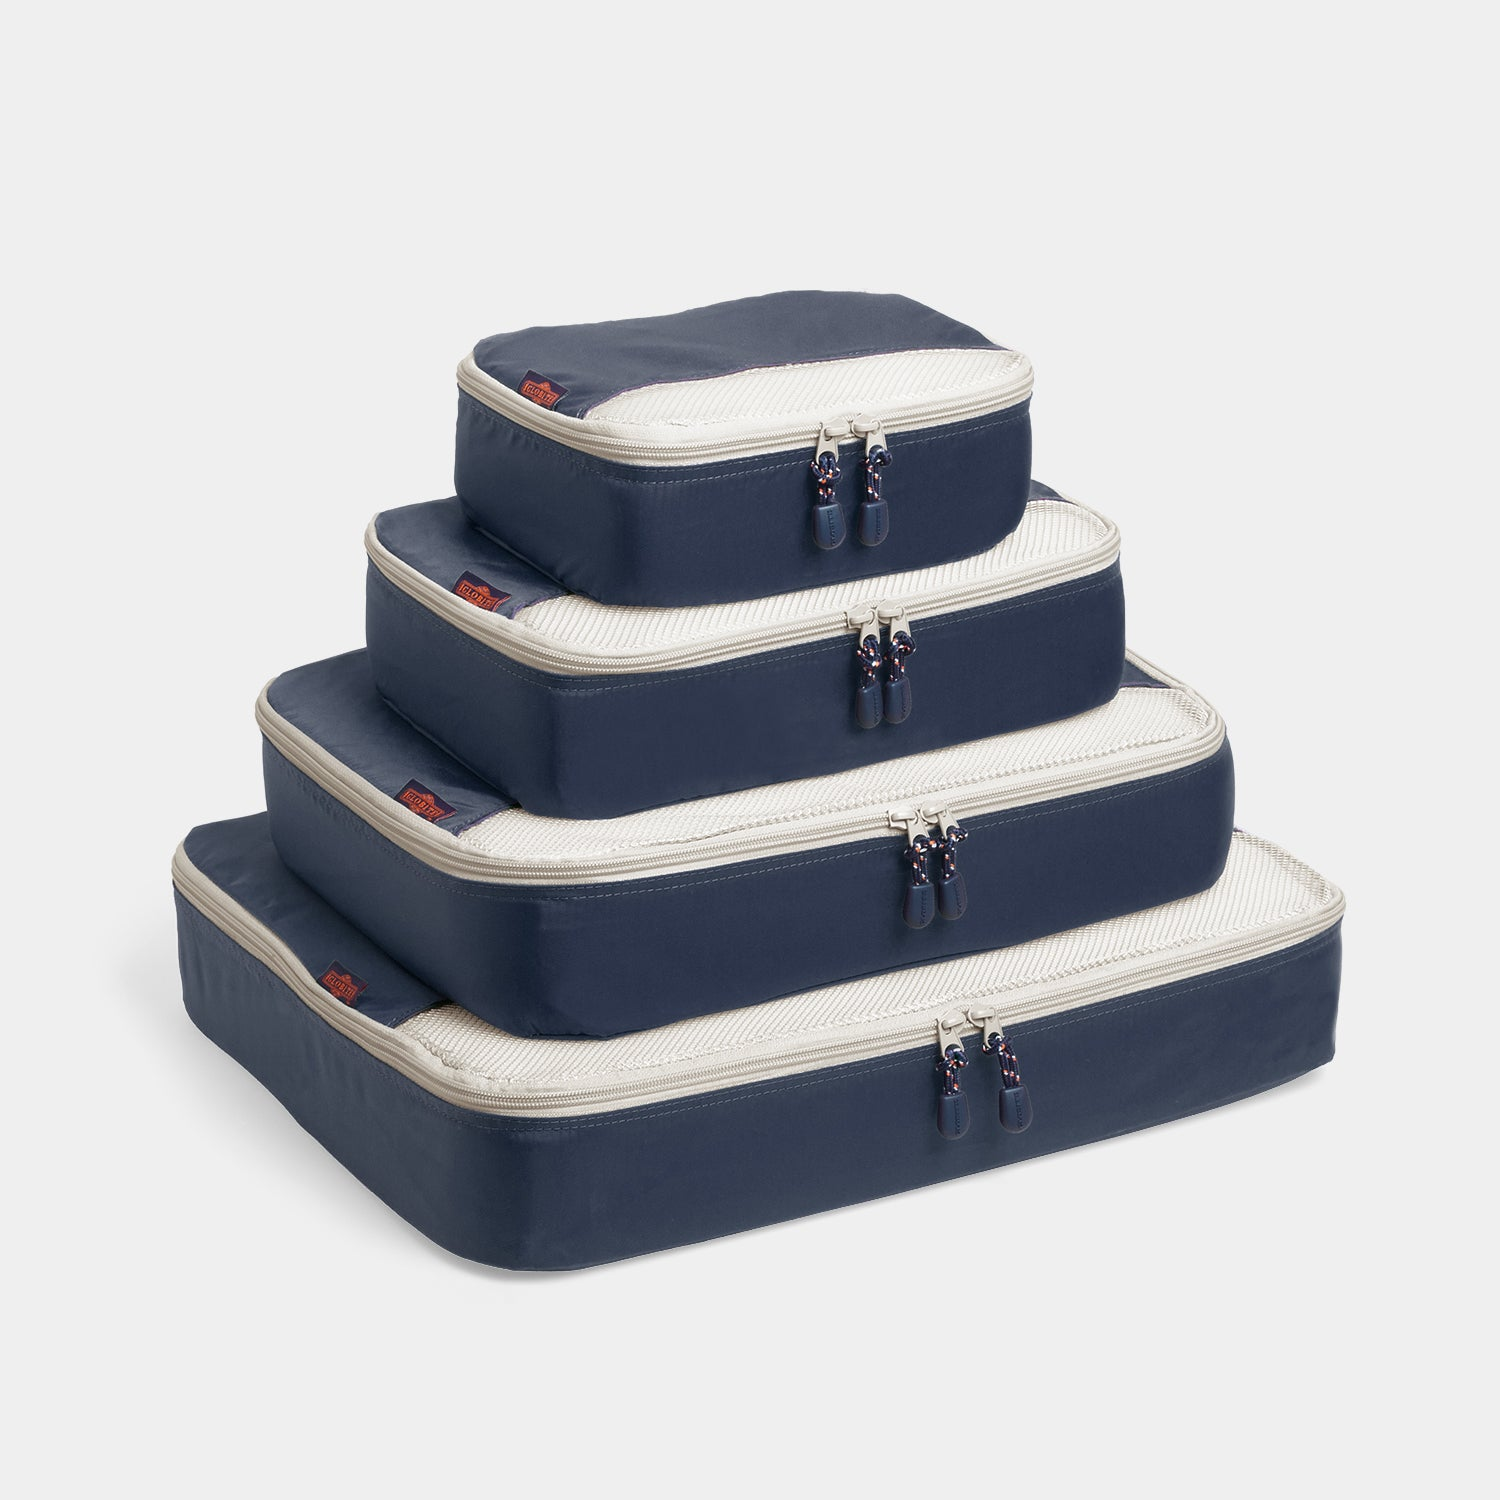 Packing Cubes 4 Piece Set - Navy - globite